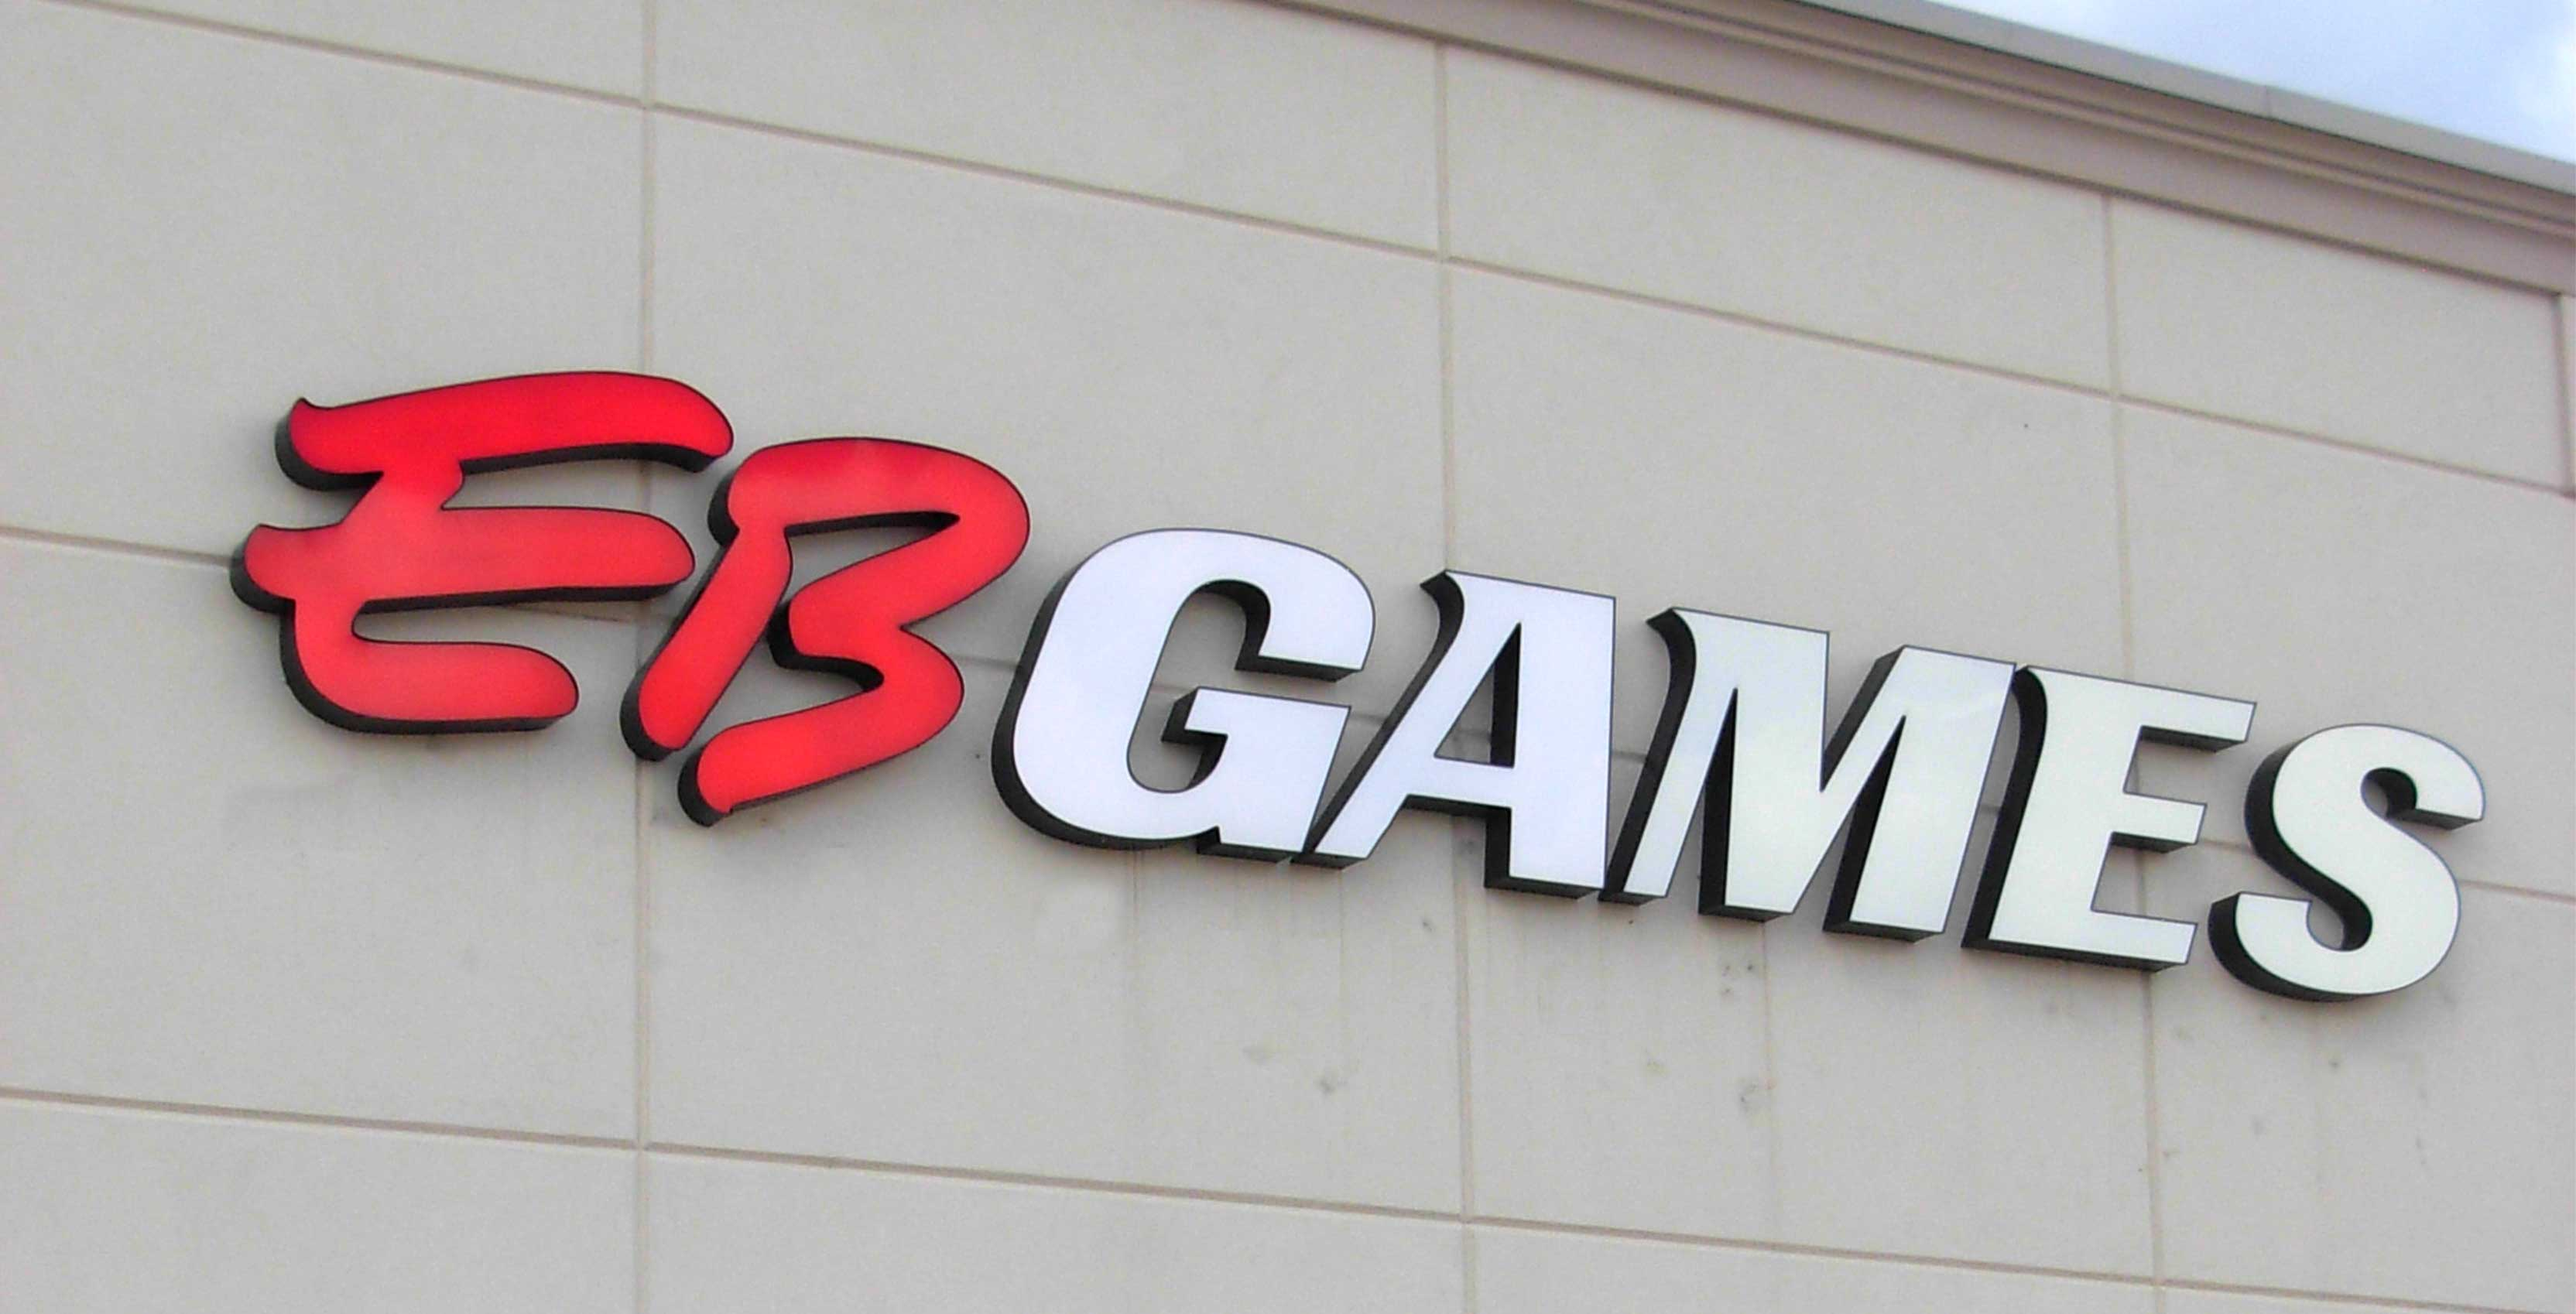 EB Games logo on building